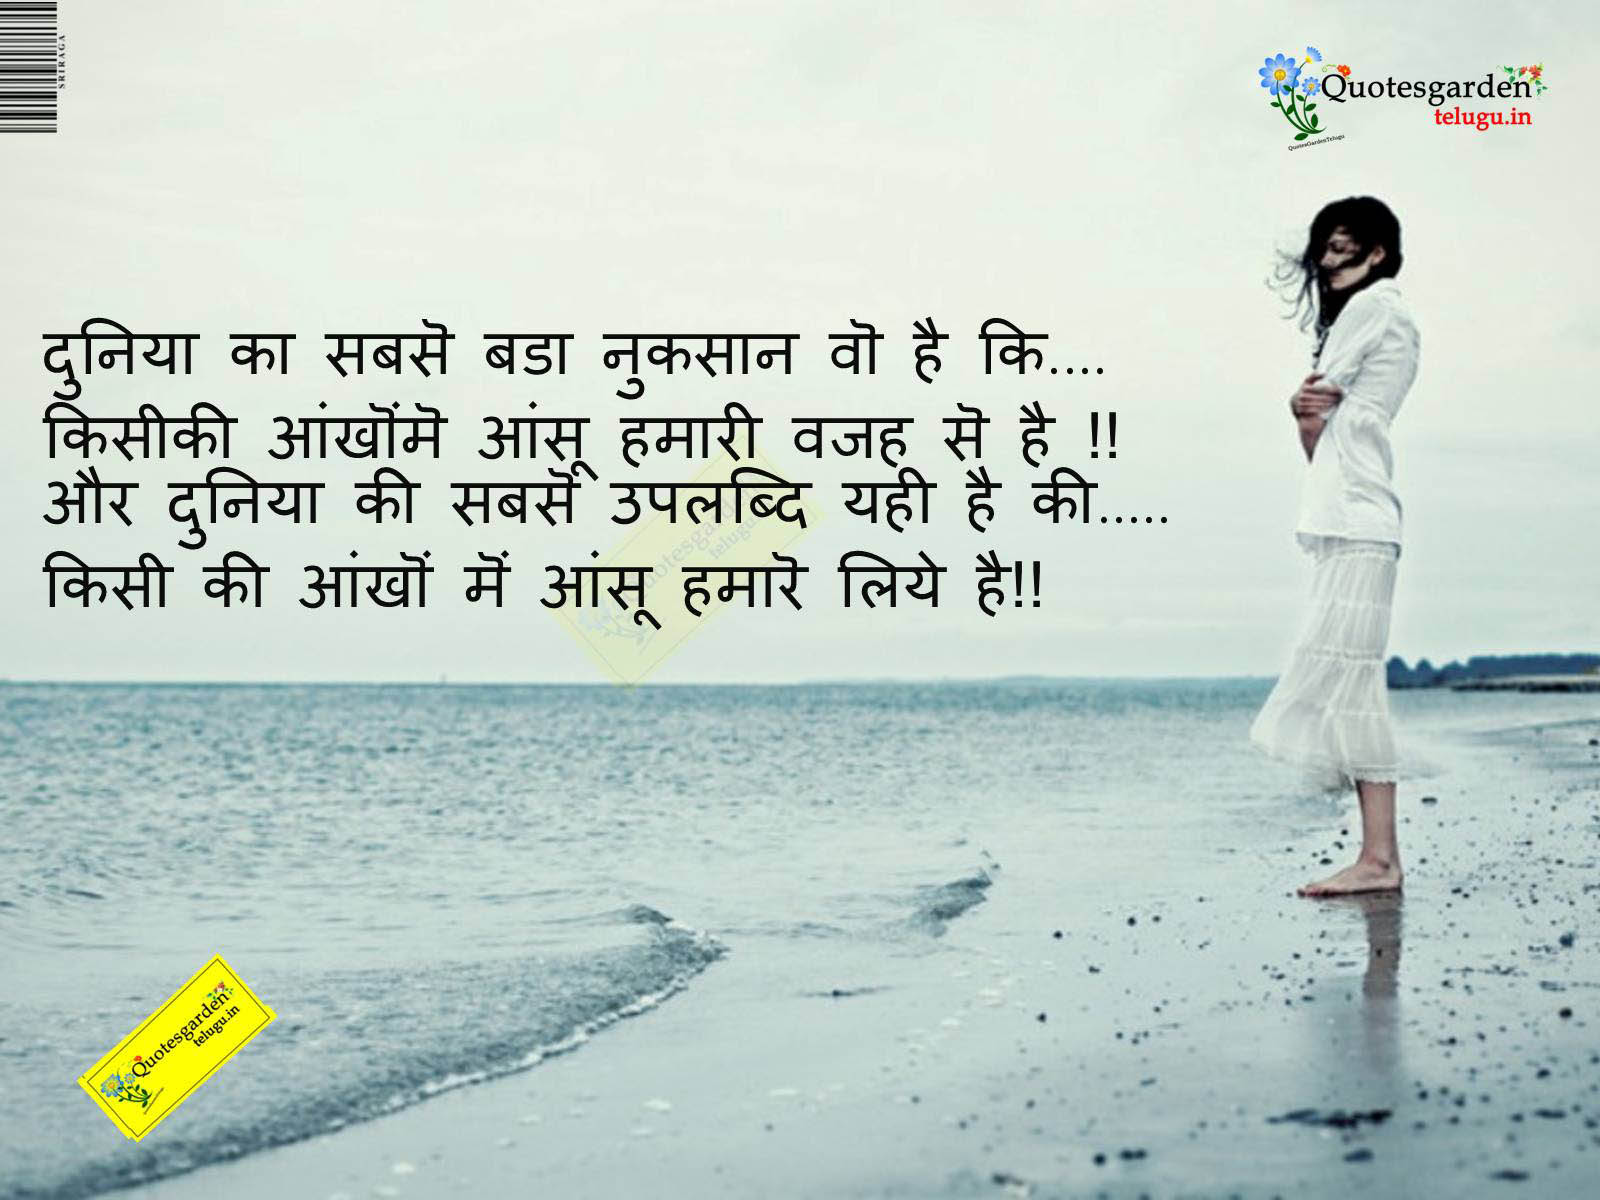 Inspirational Quotes On Happiness And Life Inspirational Quotes About Life And Happiness In Hindi